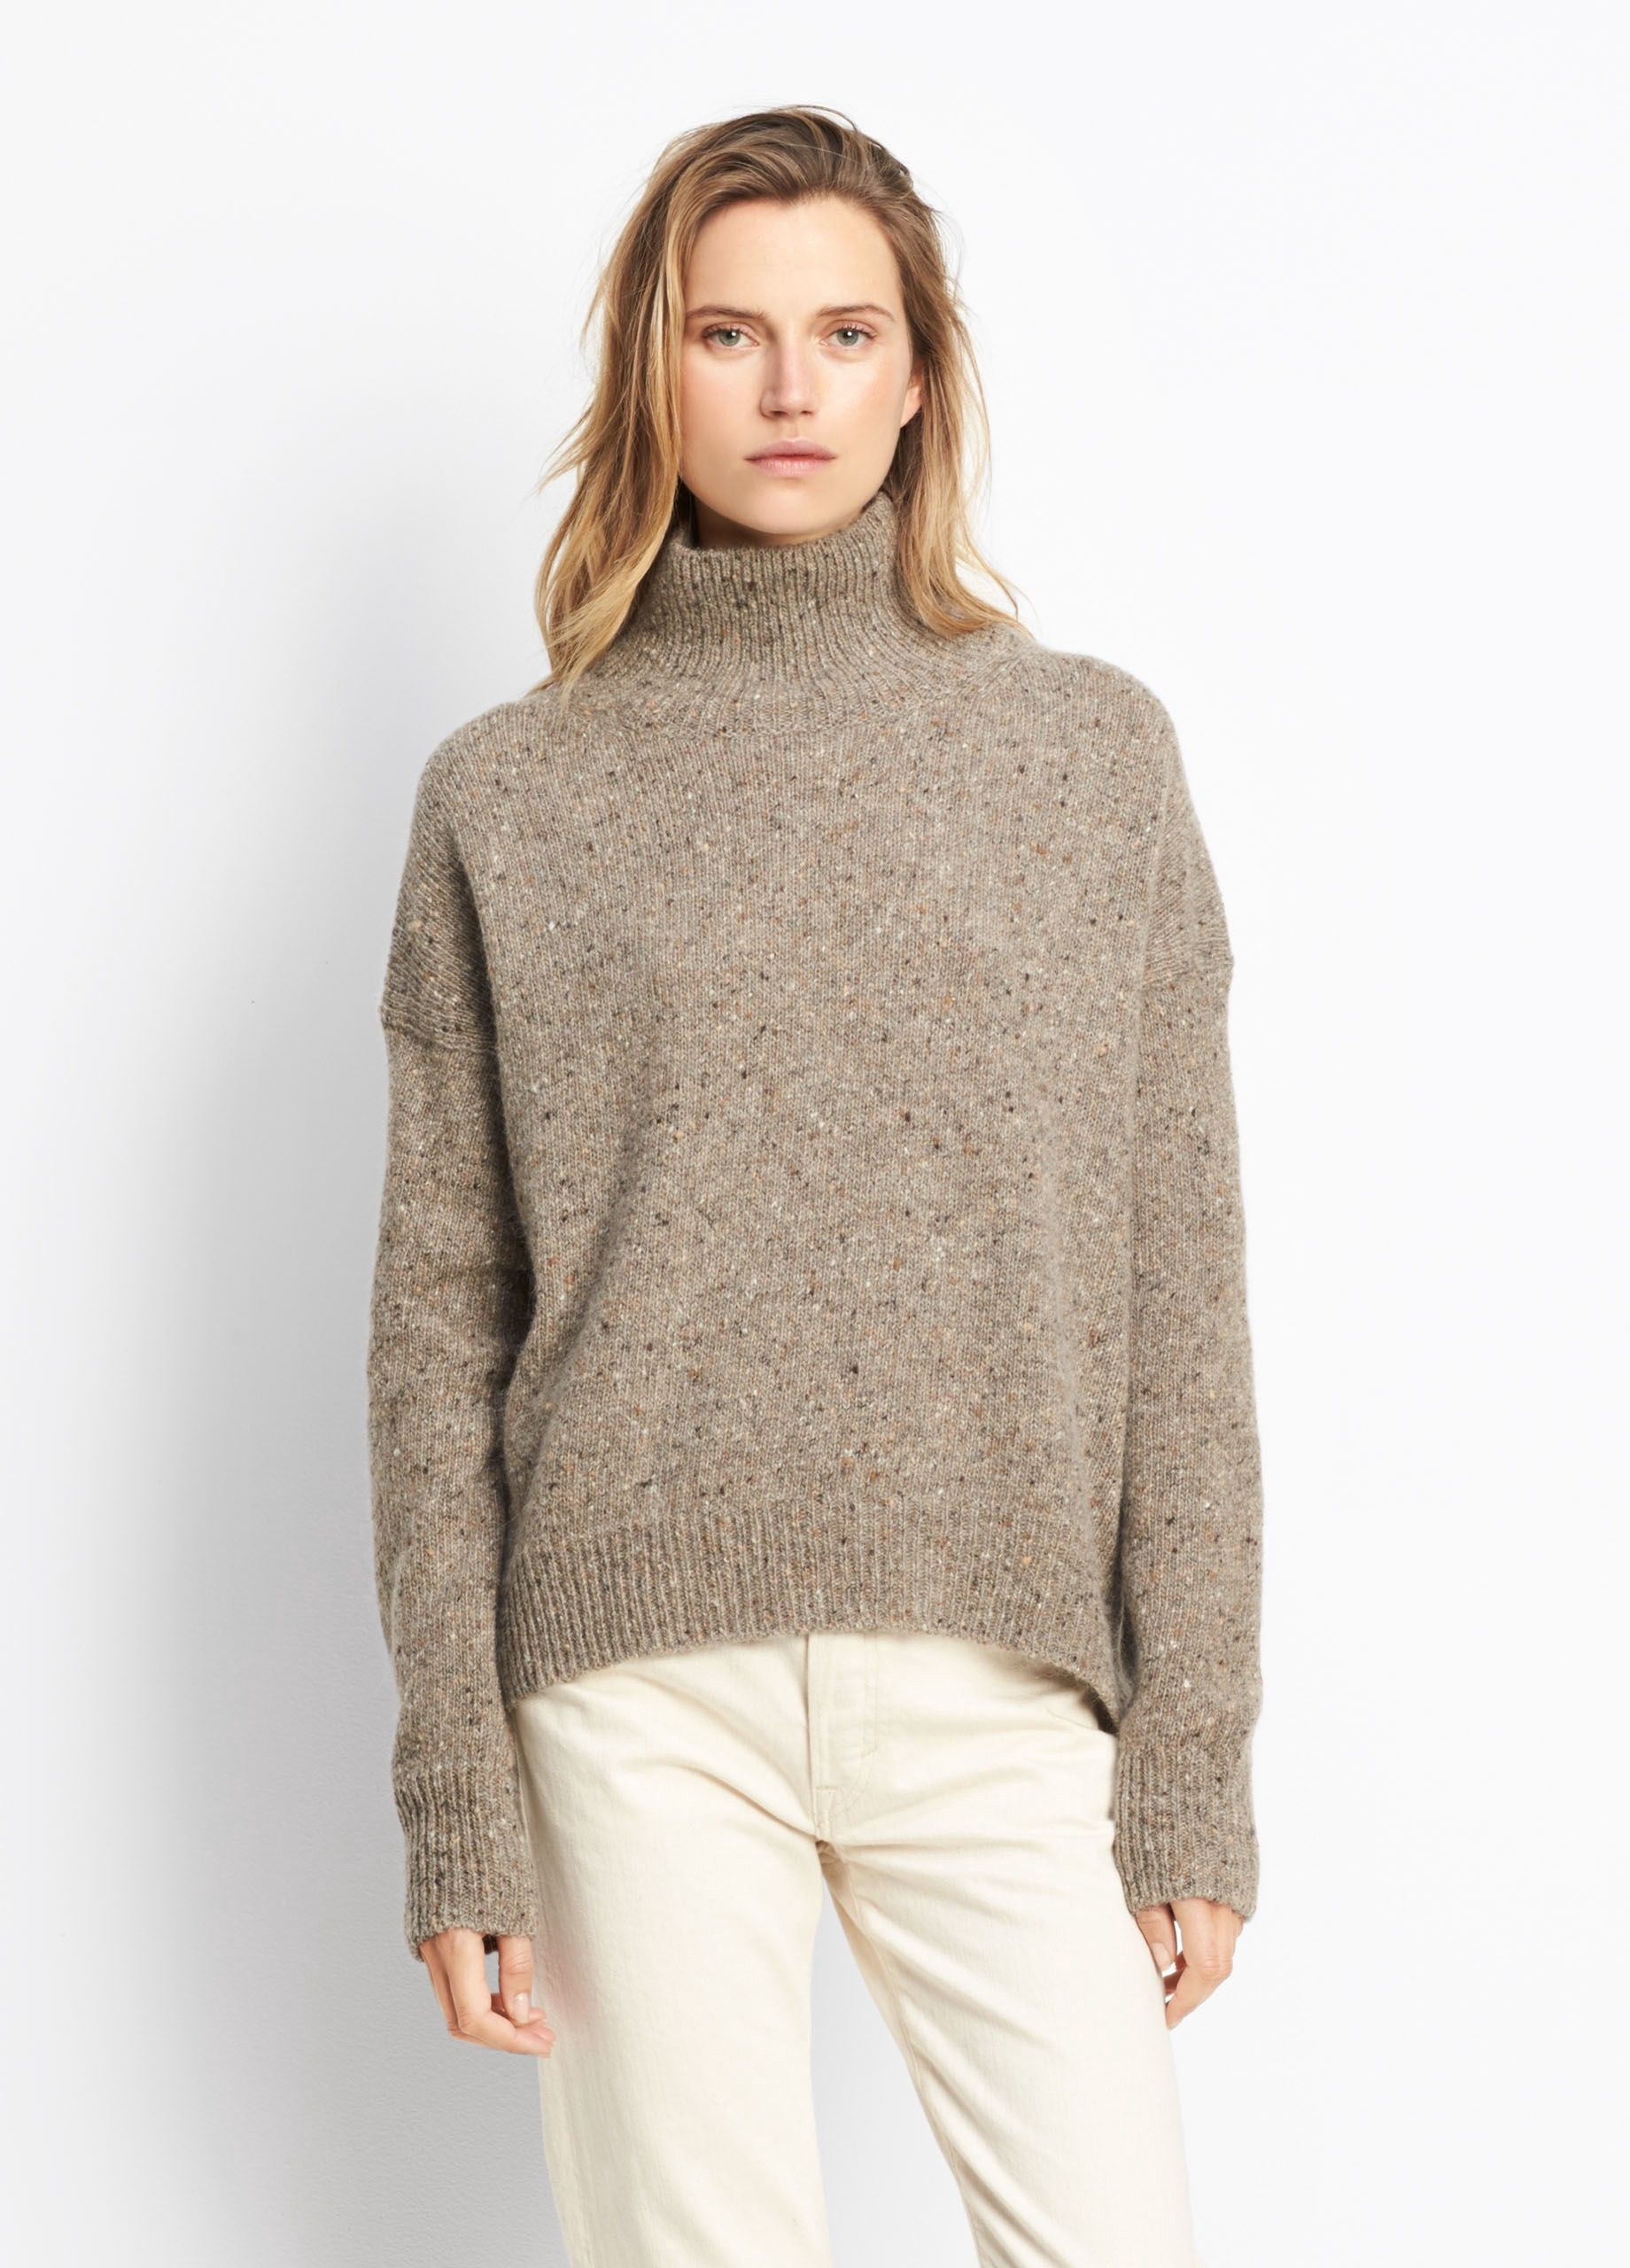 Turtleneck Pullover vince cashmere turtleneck pullover - heather ash. #vince #cloth # NVMKHRK